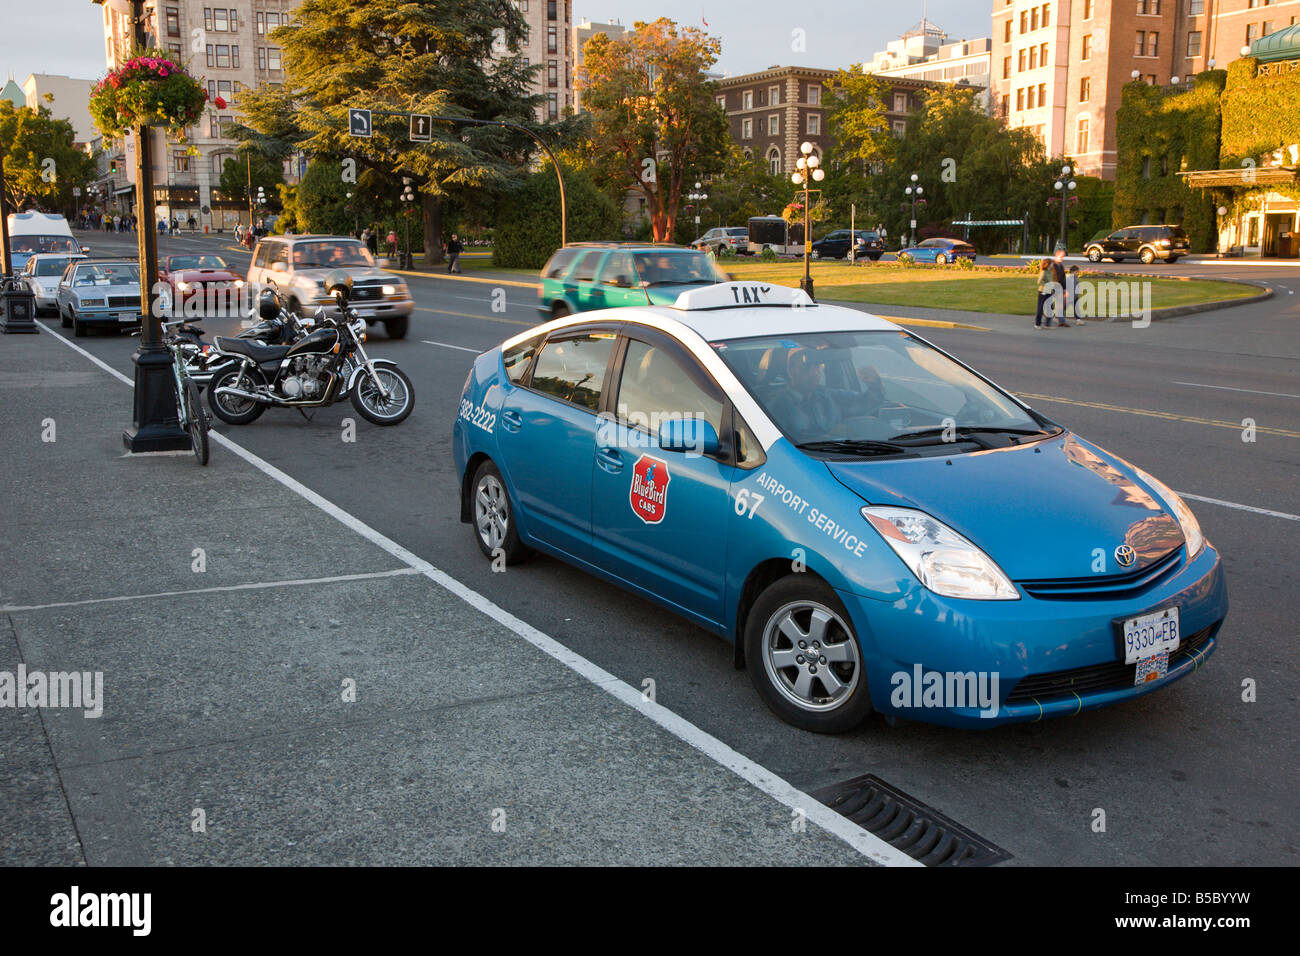 Blue Toyota Prius taxi parked at curb across from the